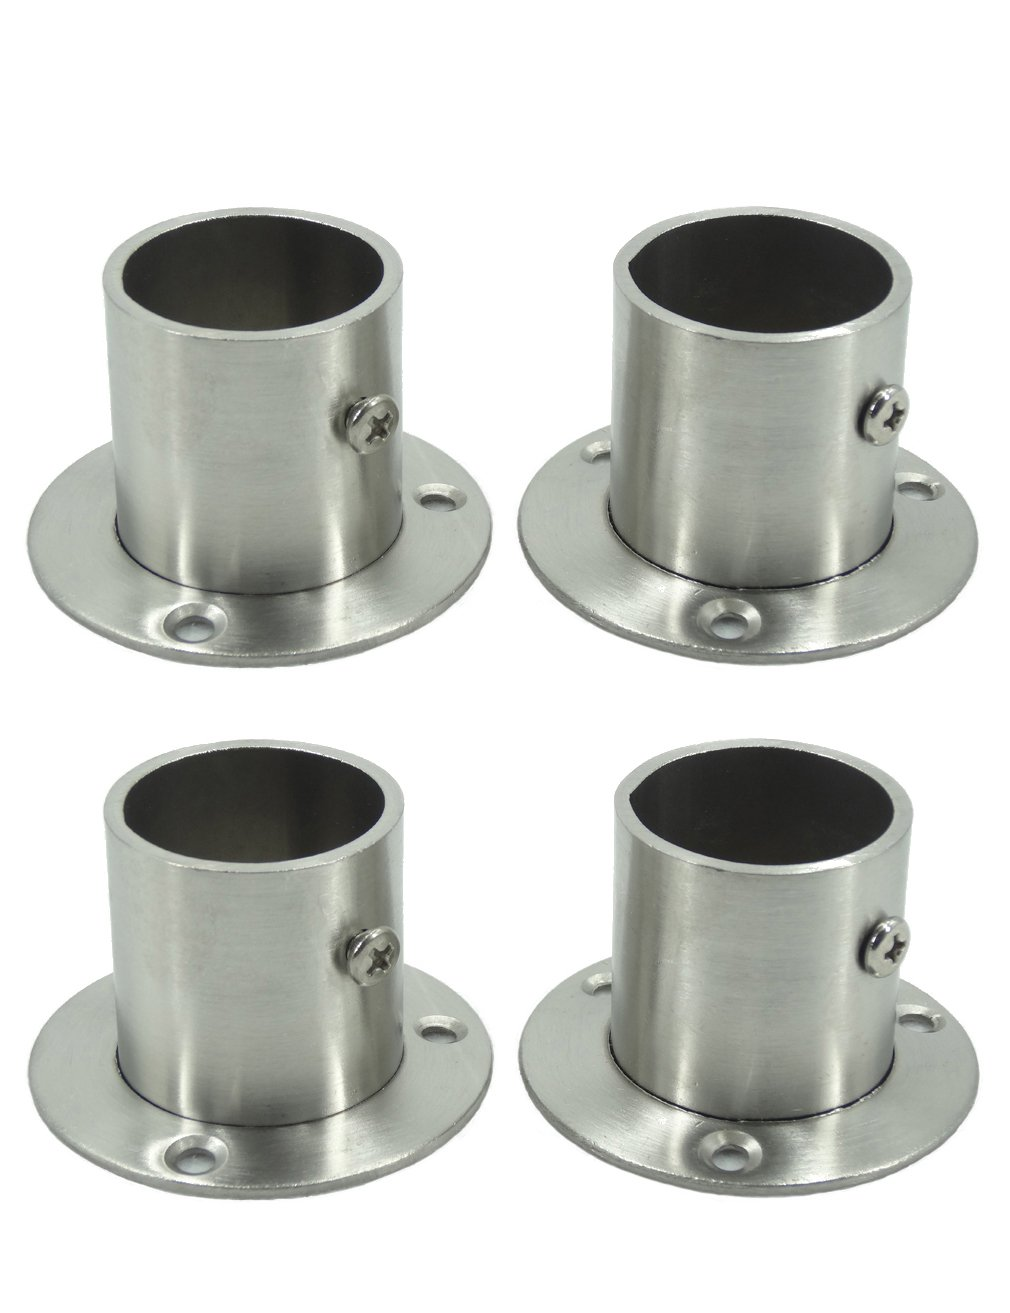 Stainless Steel Closet Wardrobe Rod Holder Socket End Support Bracket Flange for 32mm (Set of 4)